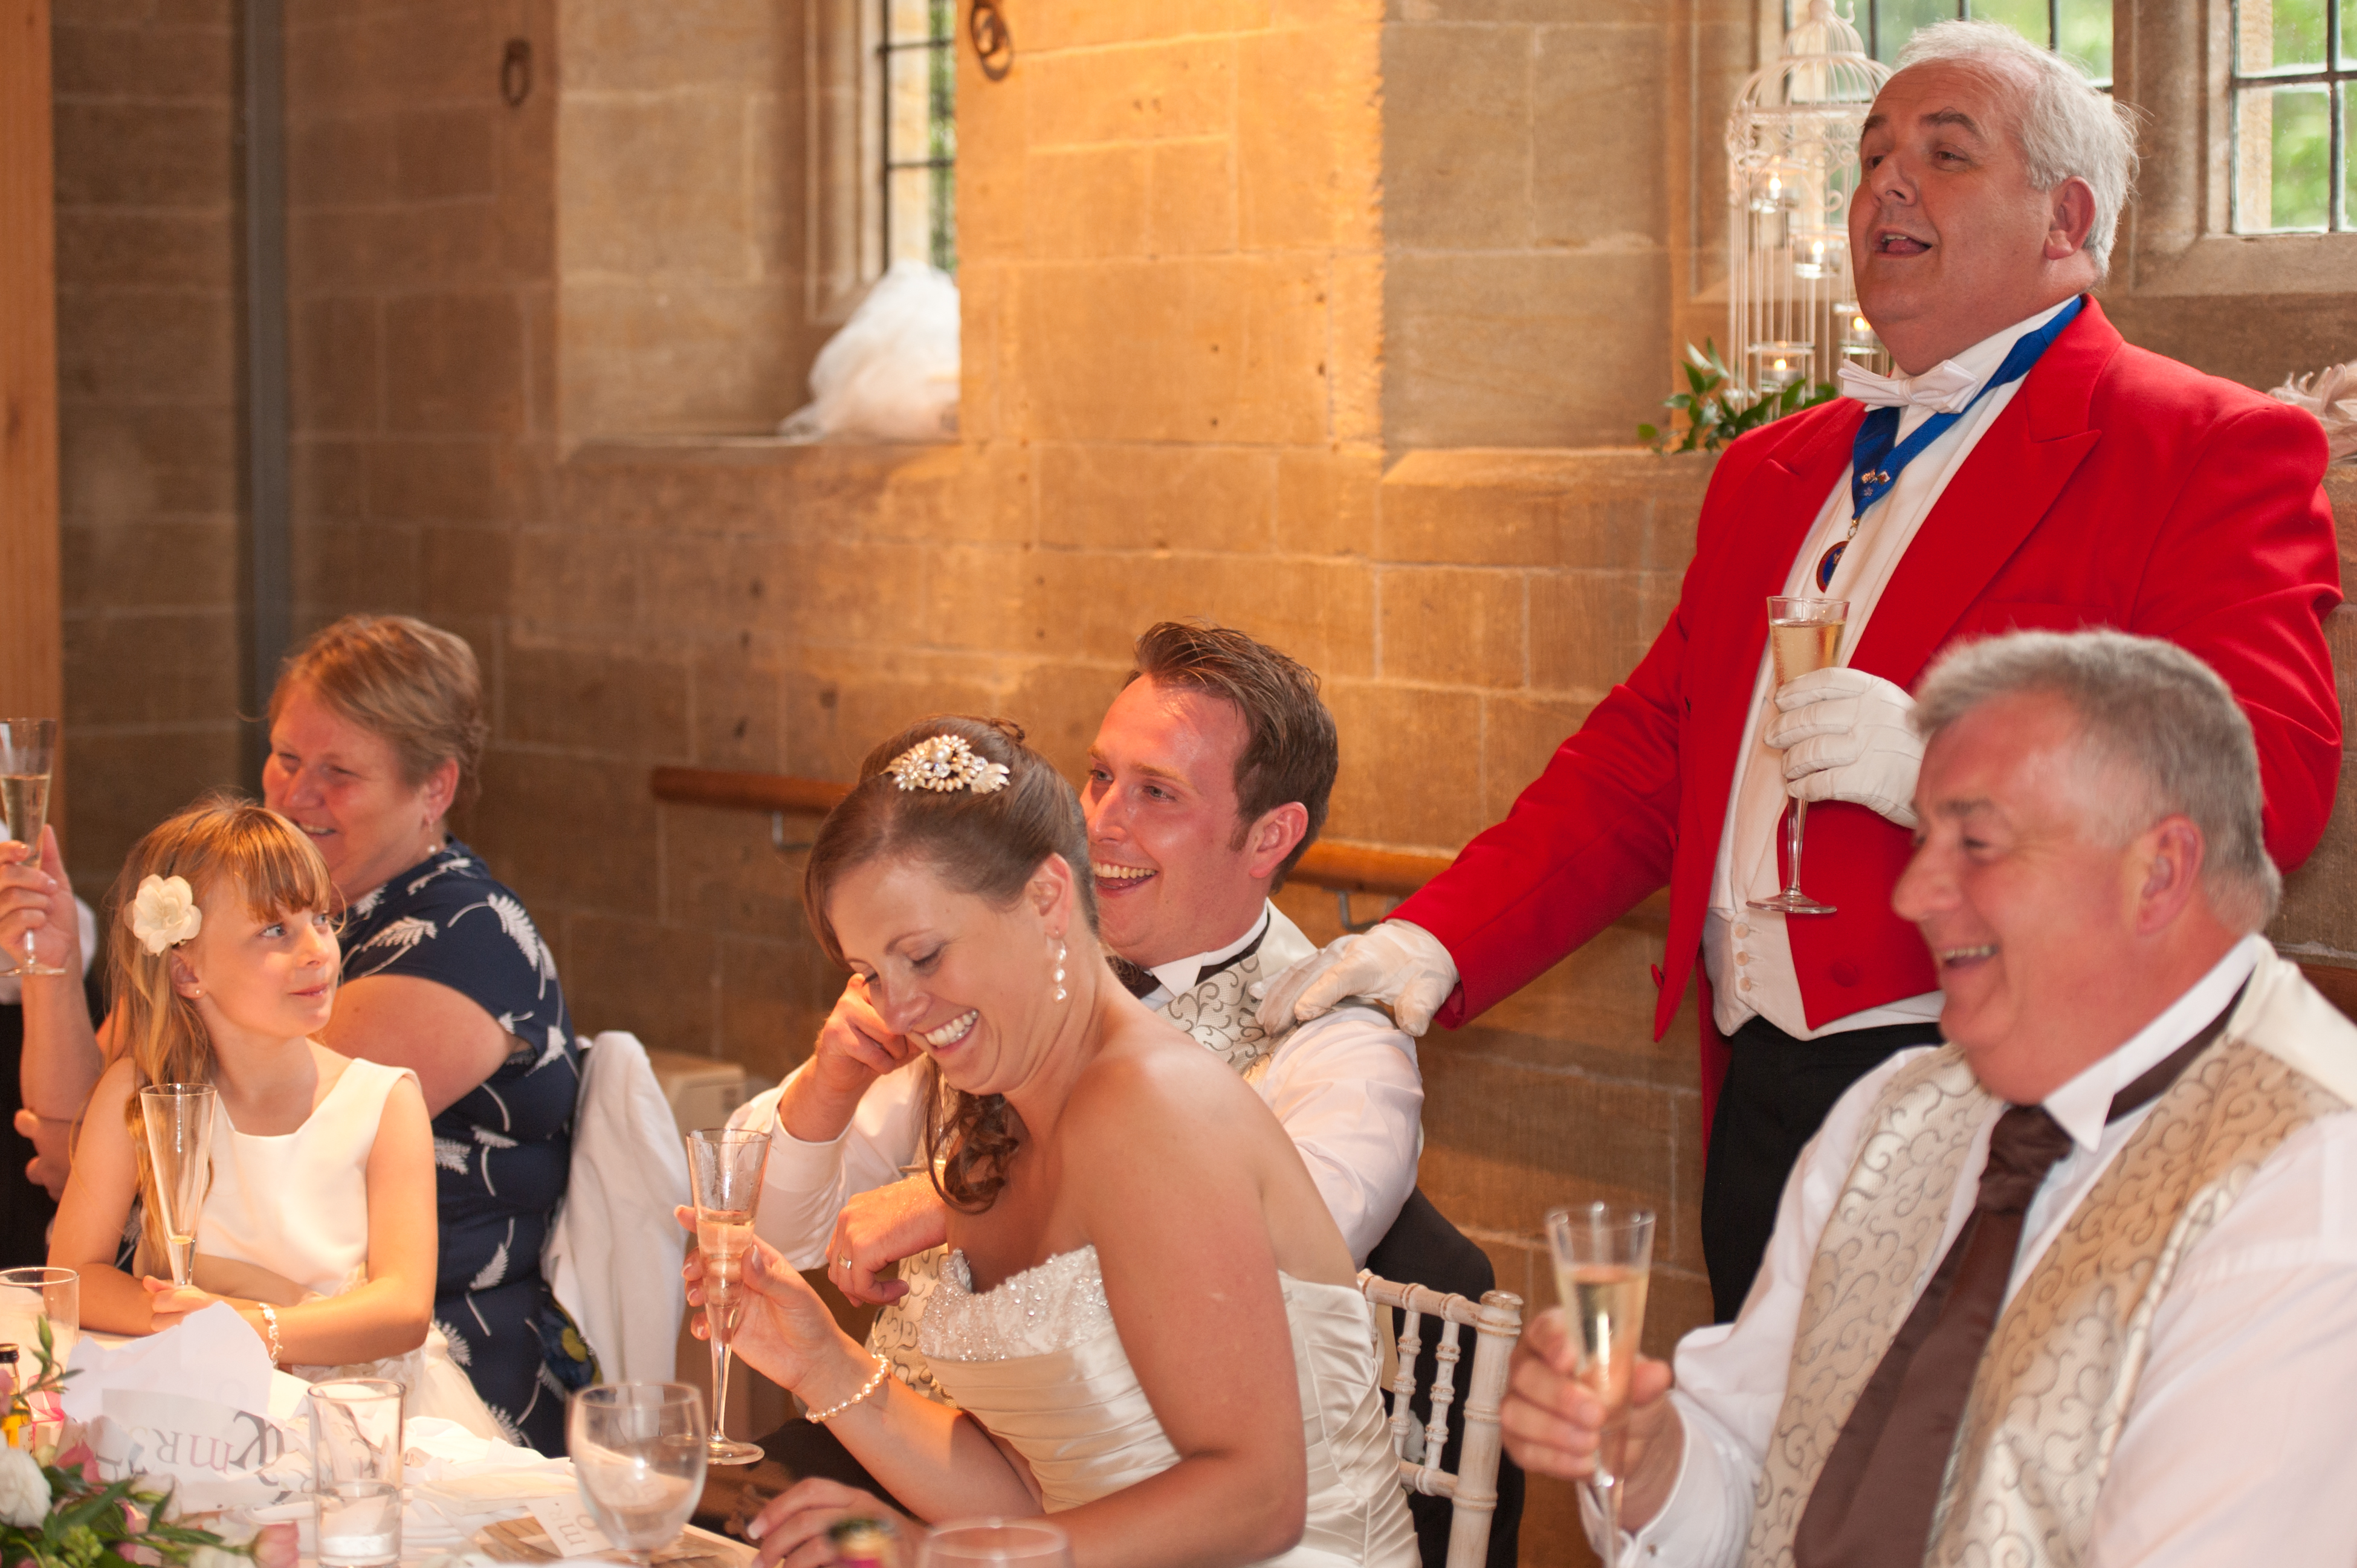 Toastmaster role at wedding